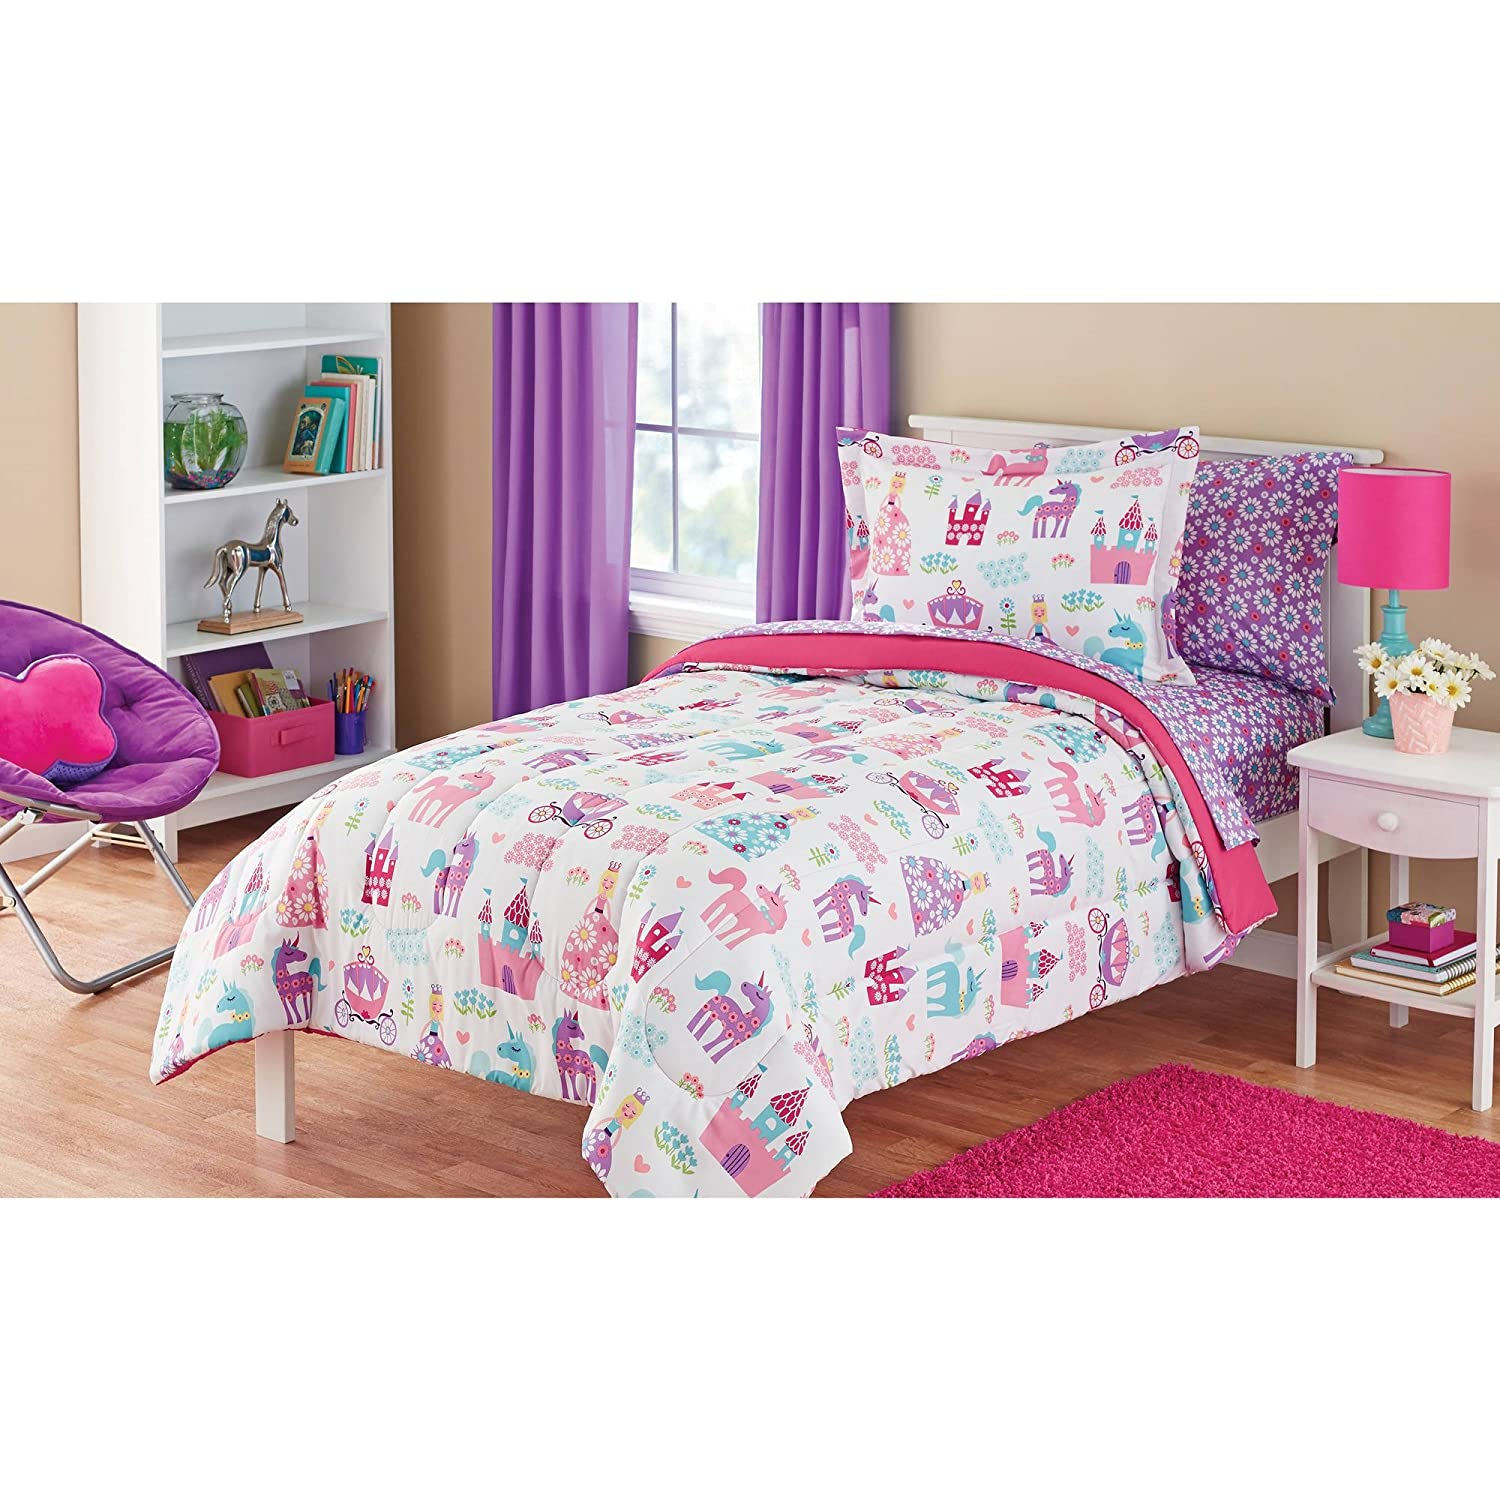 Home 187 unicorn quilt cover set return to previous page - Amazon Com Super Cozy Kids Pretty Princess Bed In A Bag Bedding Set Twin Full Perfect For Your Little Princess Twin Home Kitchen